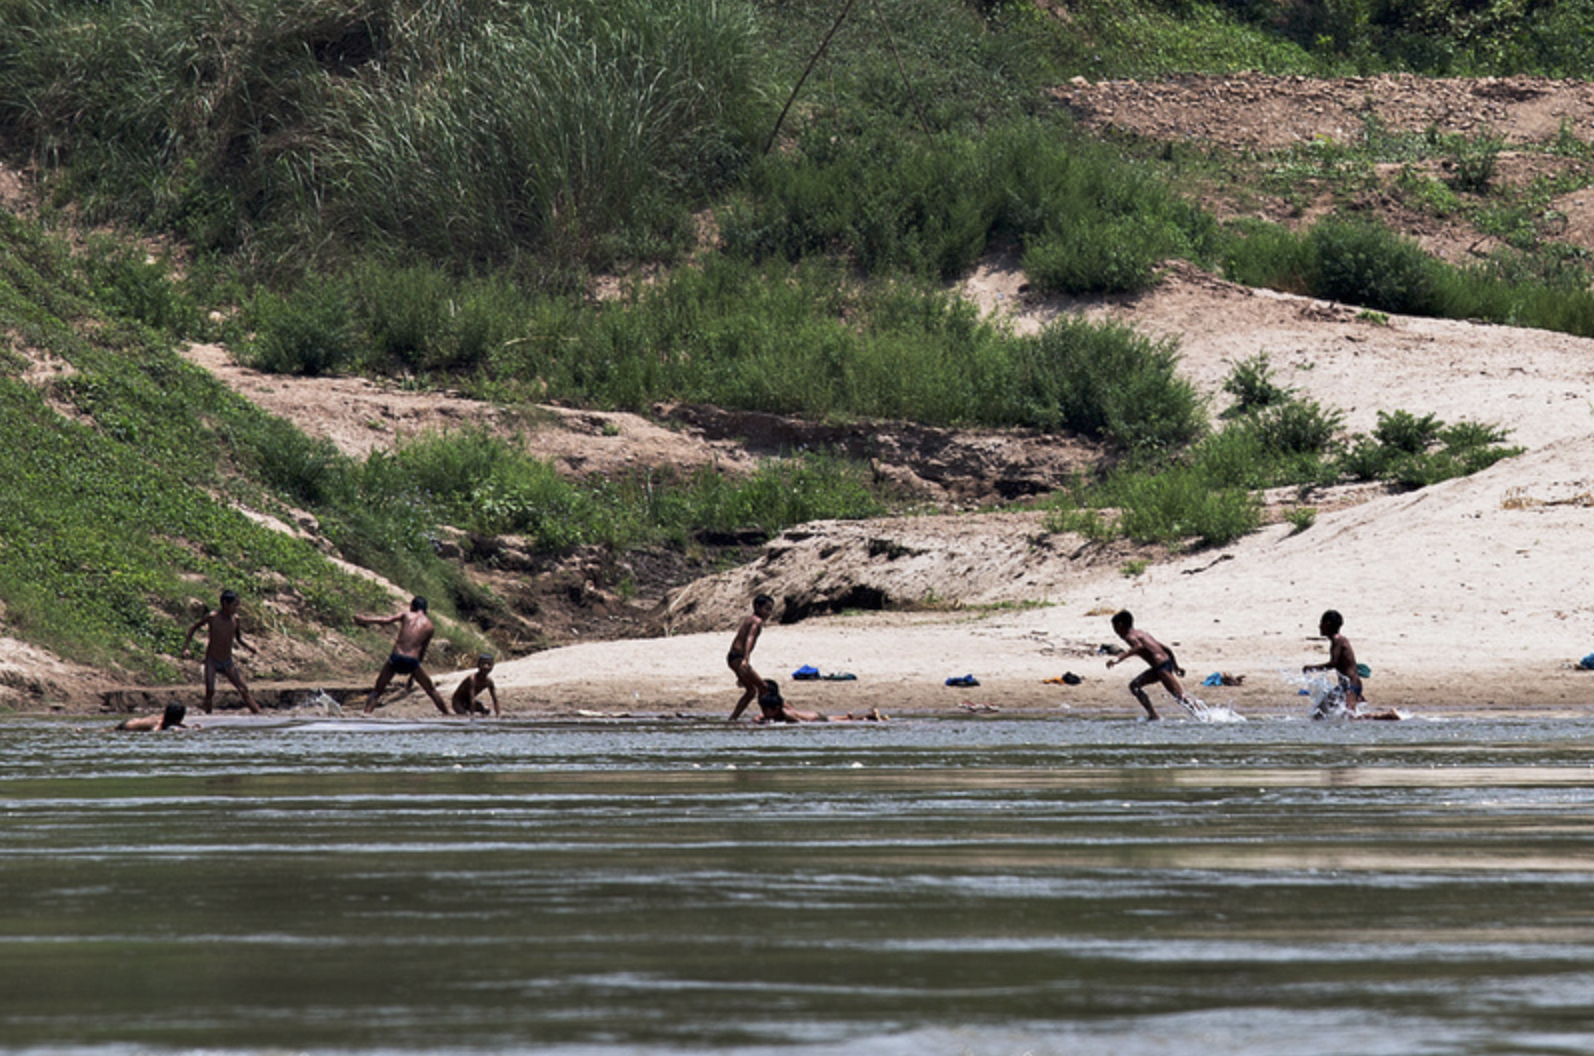 Hilltribe children play in the river.